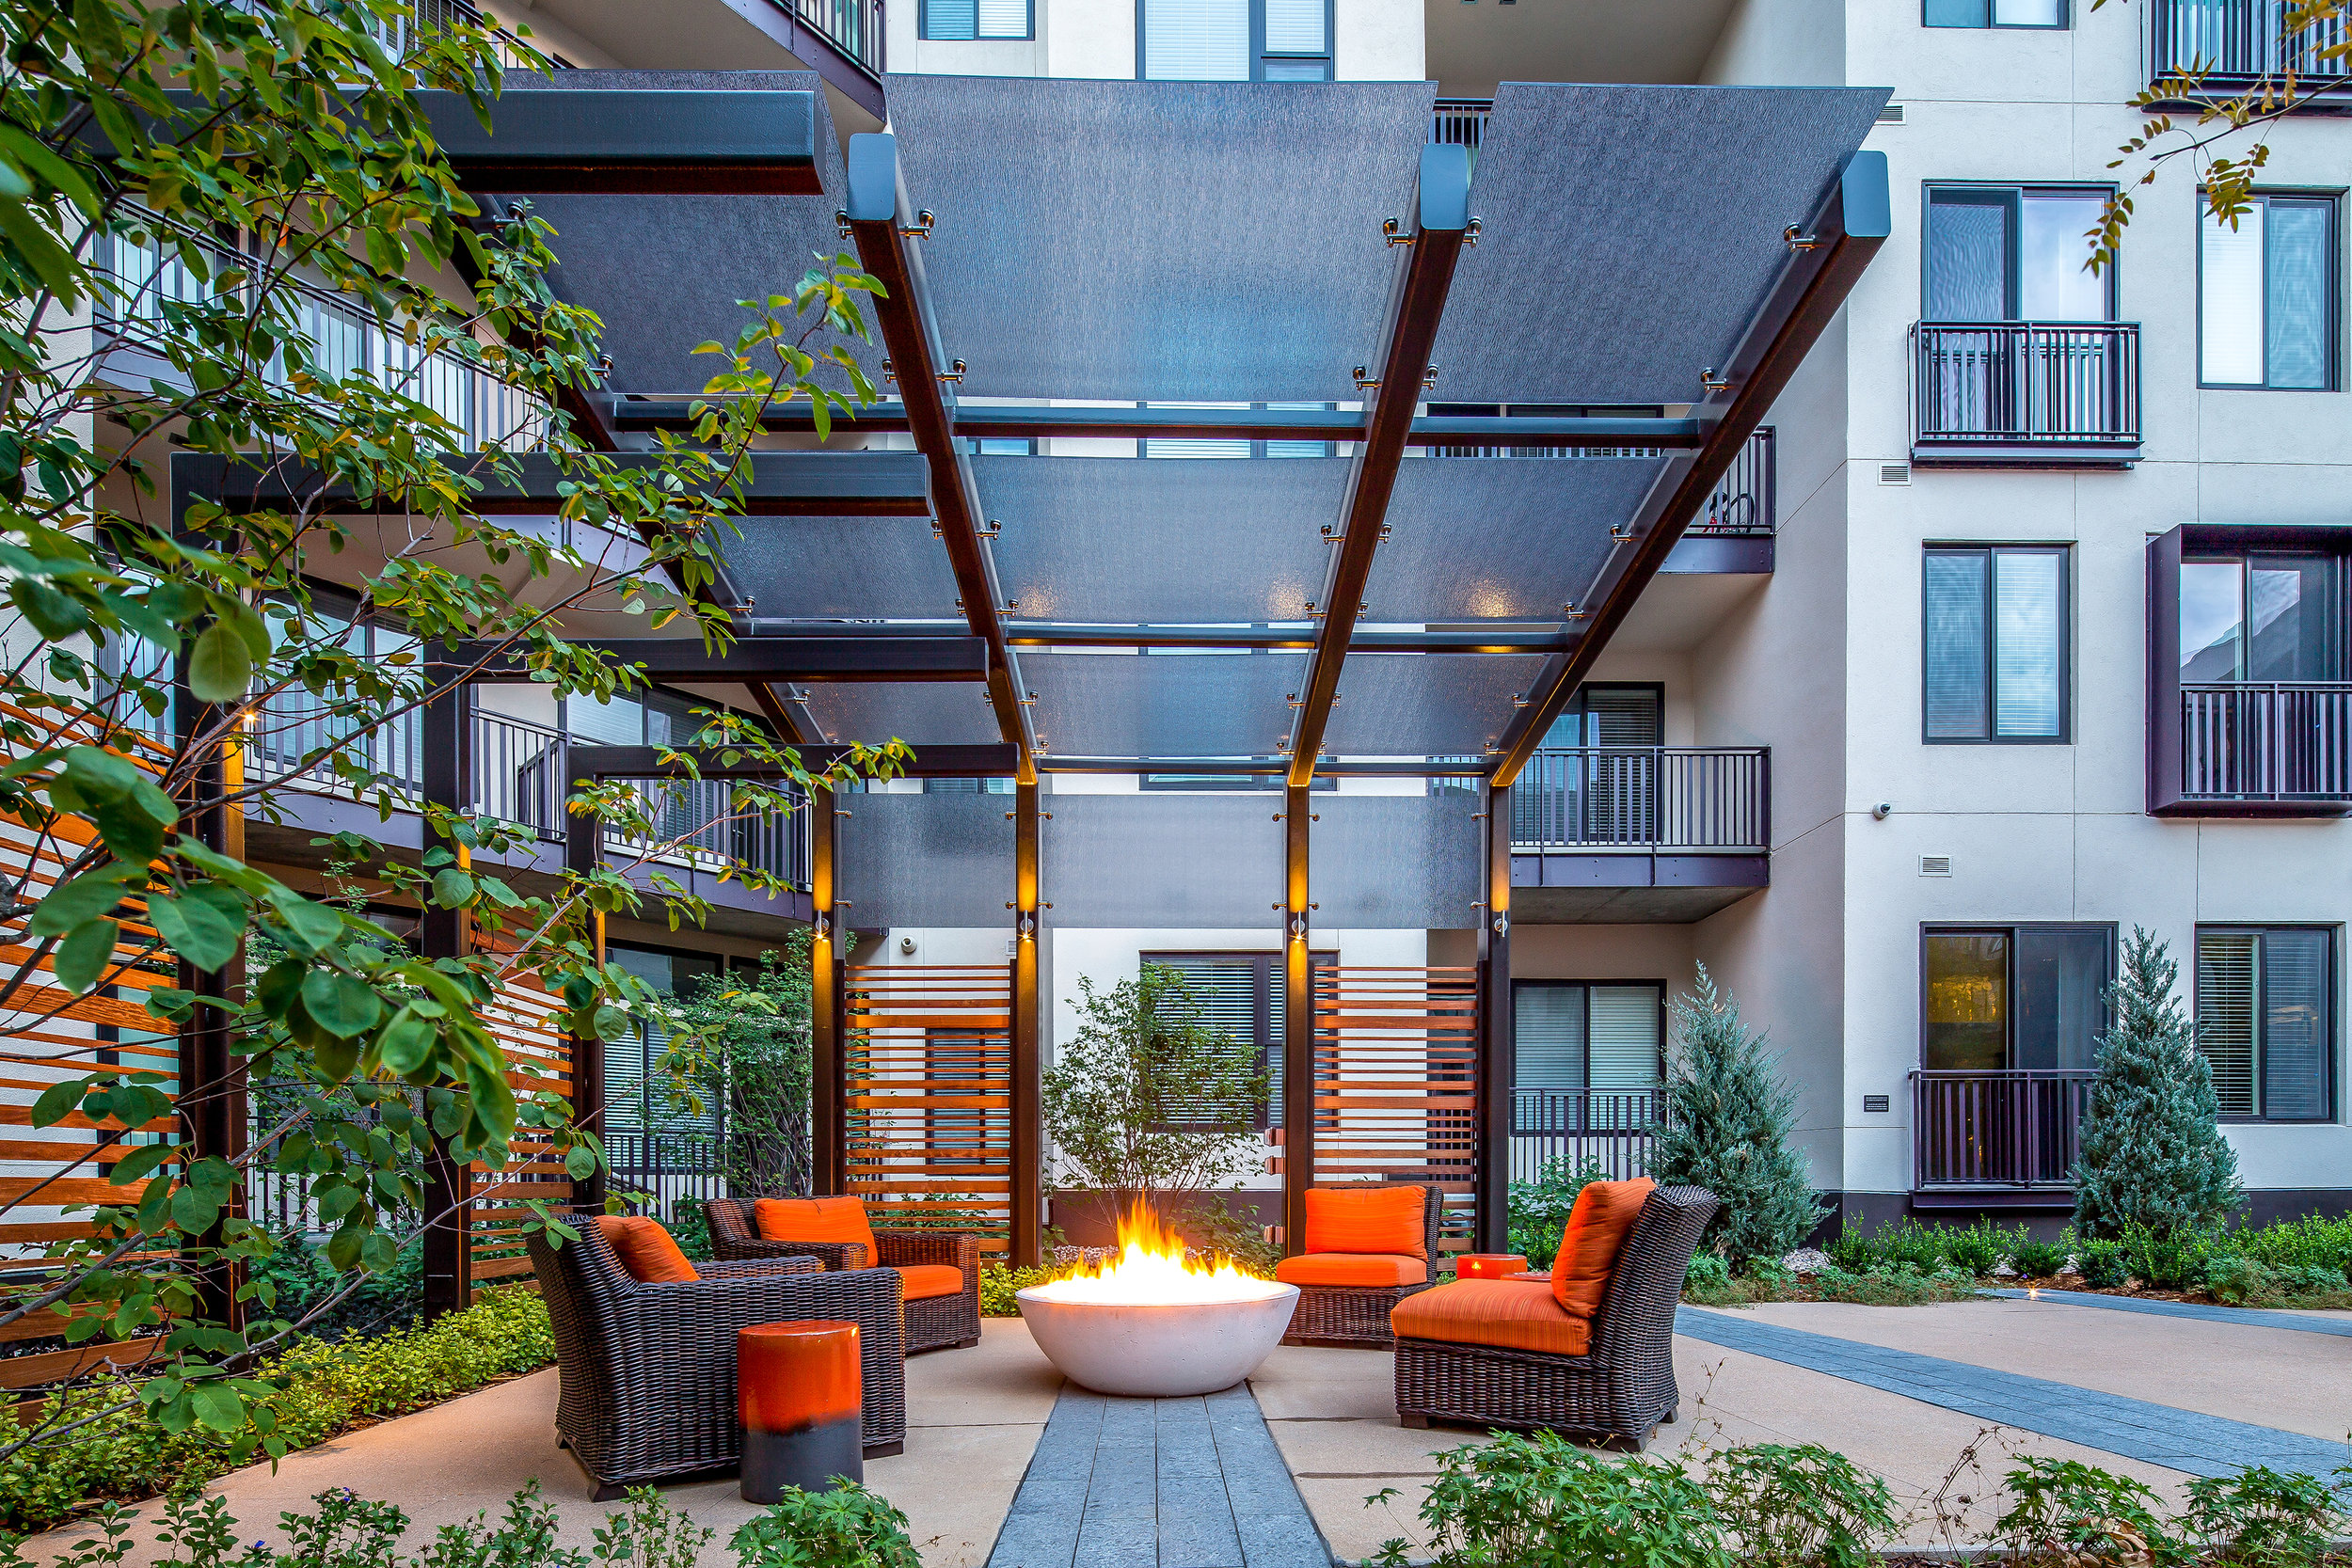 """<img src="""" studioINSITE_The_Douglass_Firepit_Seating-2 """"alt=""""Urban Living, Multifamily Courtyard, Amenity Deck, Fire Pit, Grill Area, Shade Structure, Fireplace, Landscape Architecture, Luxury Living, the Douglas, Denver, CO, Colorado Courtyards, Amenity Spaces, Great Courtyard Designs  """" title=""""The Douglas  """"/>"""